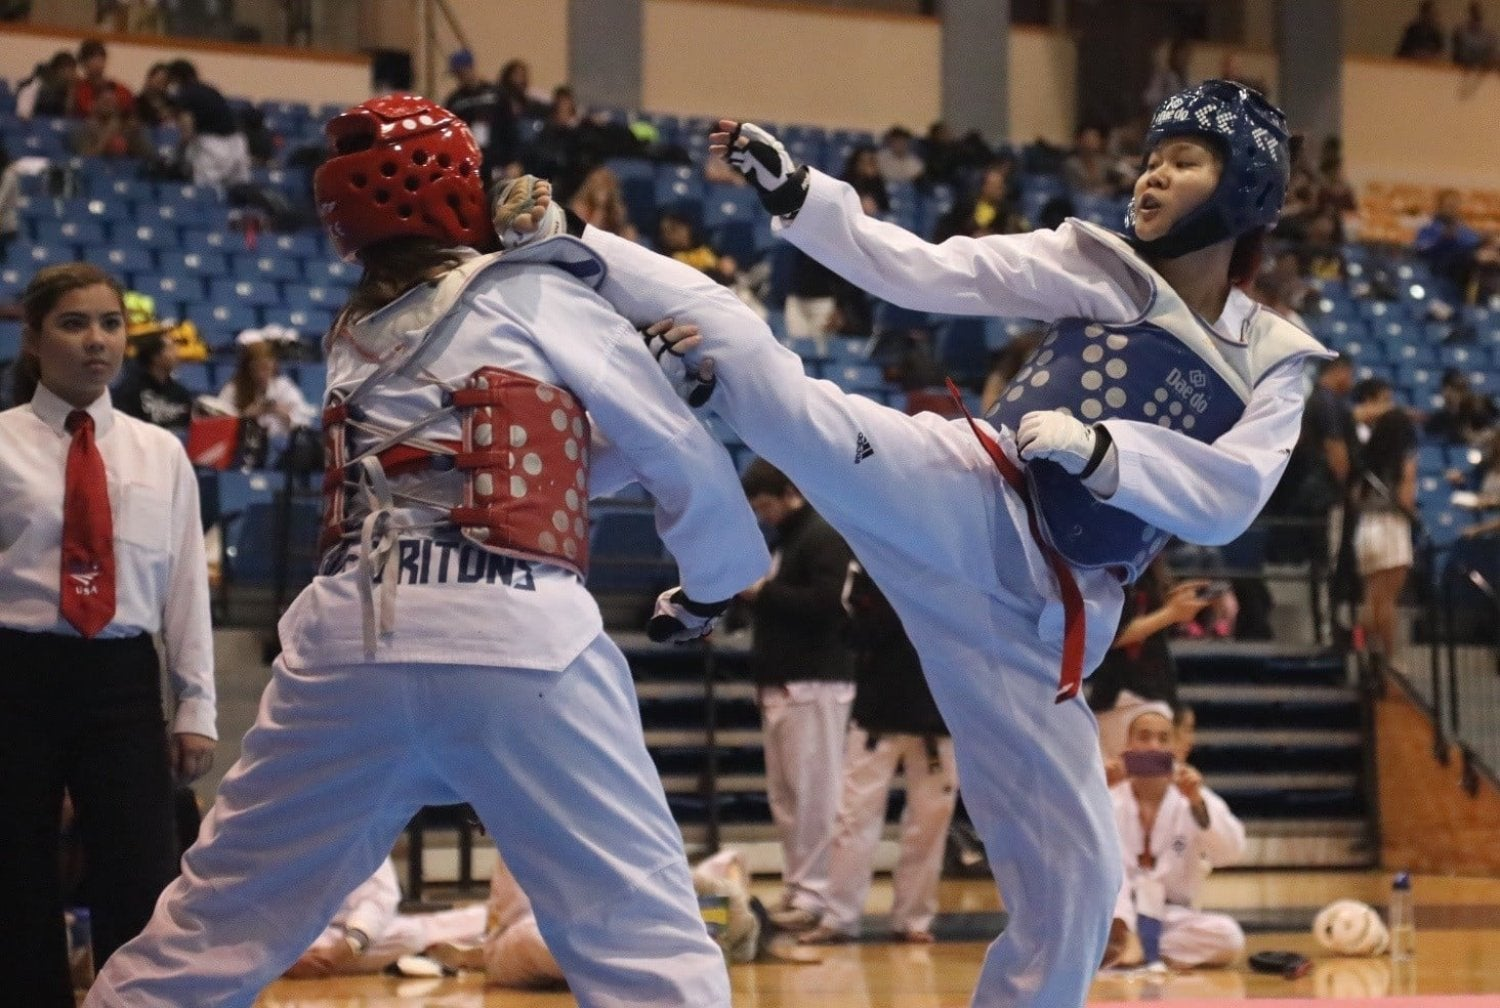 students sparring at a tournament